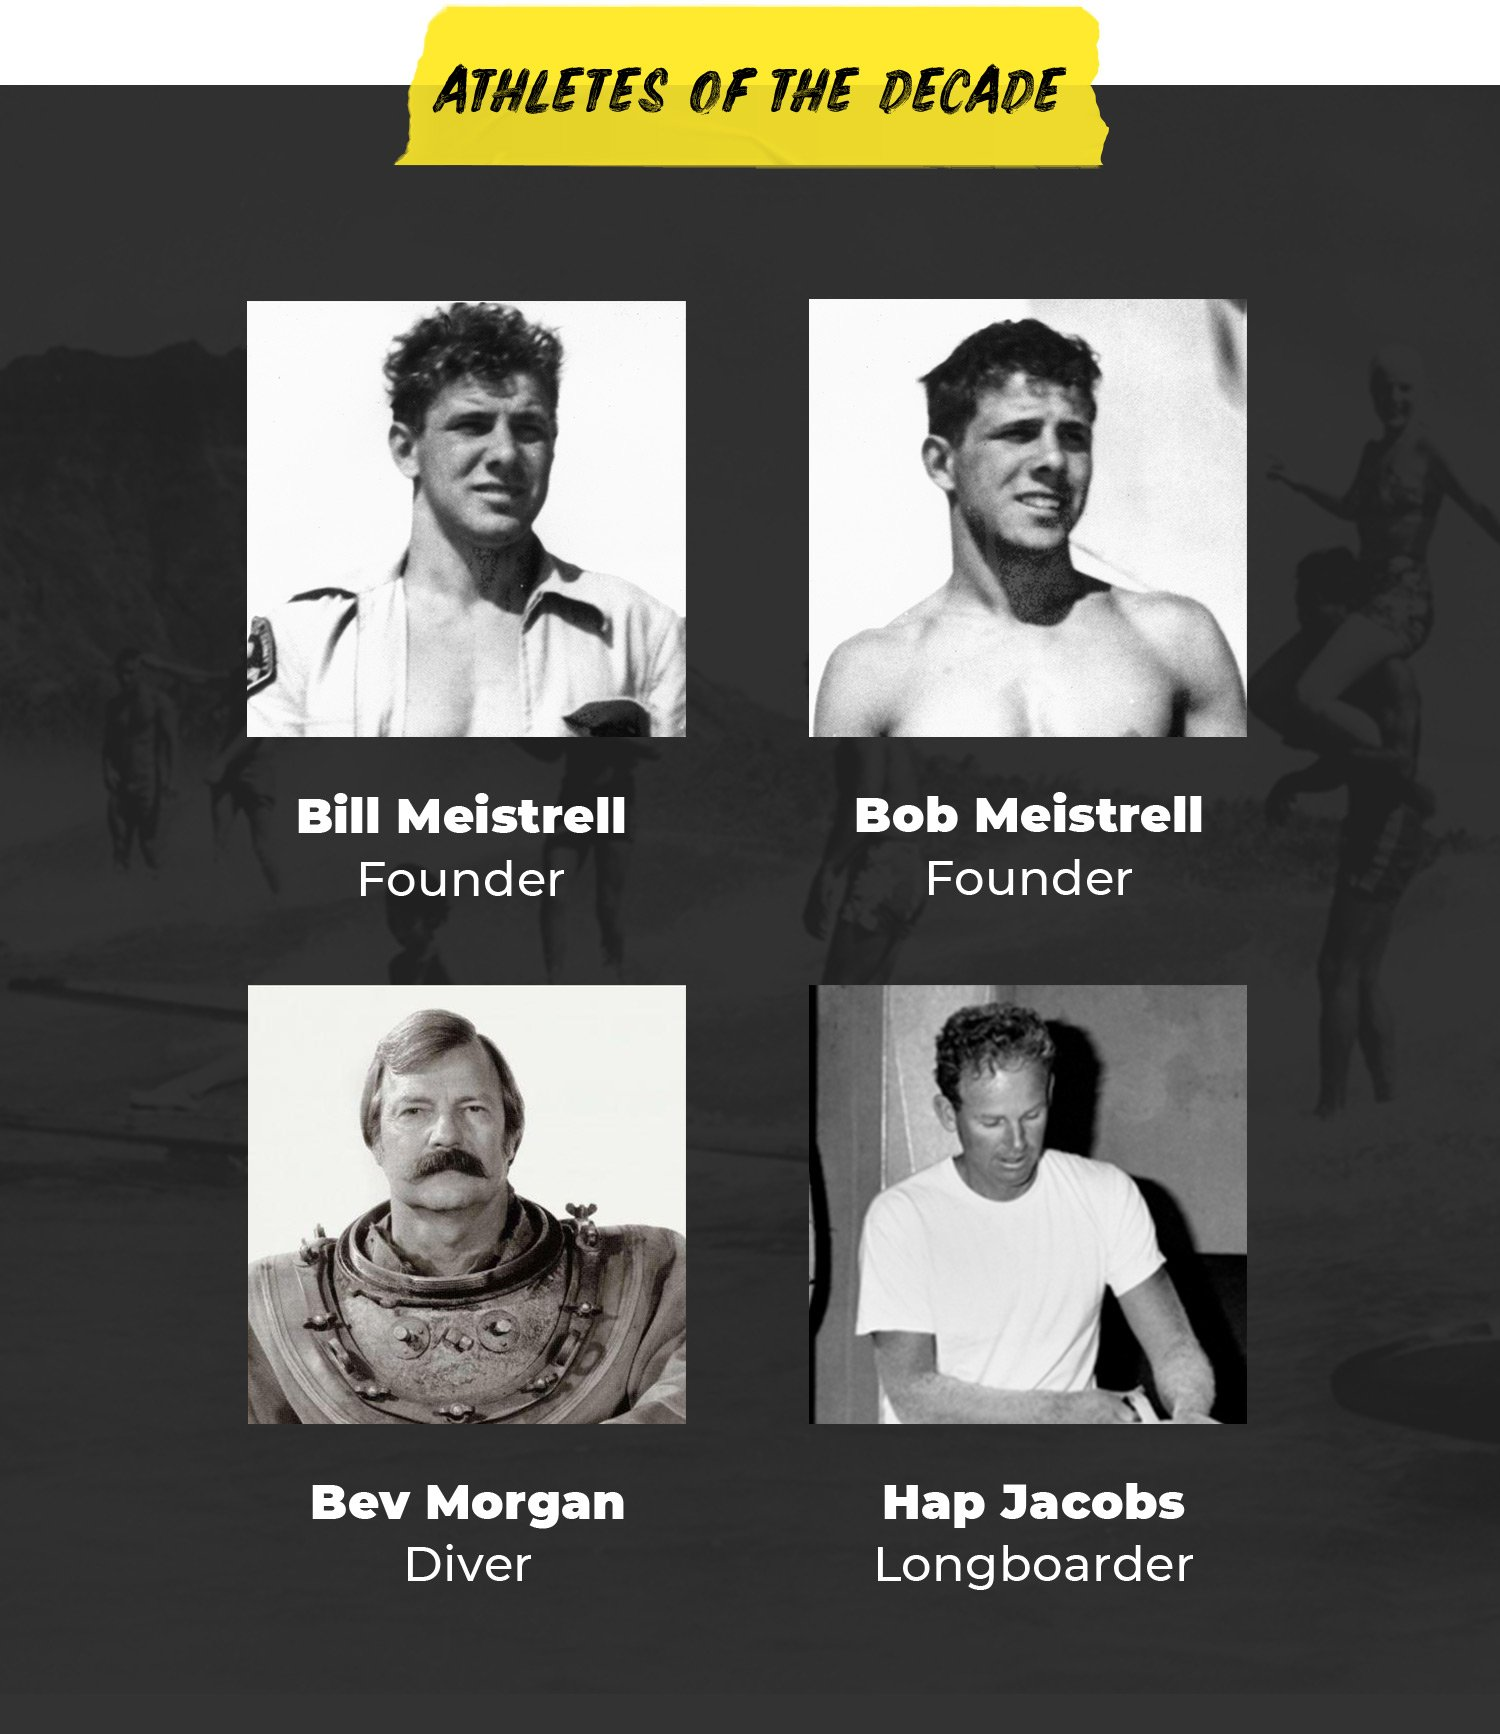 Athletes of the Decade | Bill Meistrell, Founder | Bob Meistrell, Founder | Bev Morgan, Diver | Hap Jacobs, Longboarder